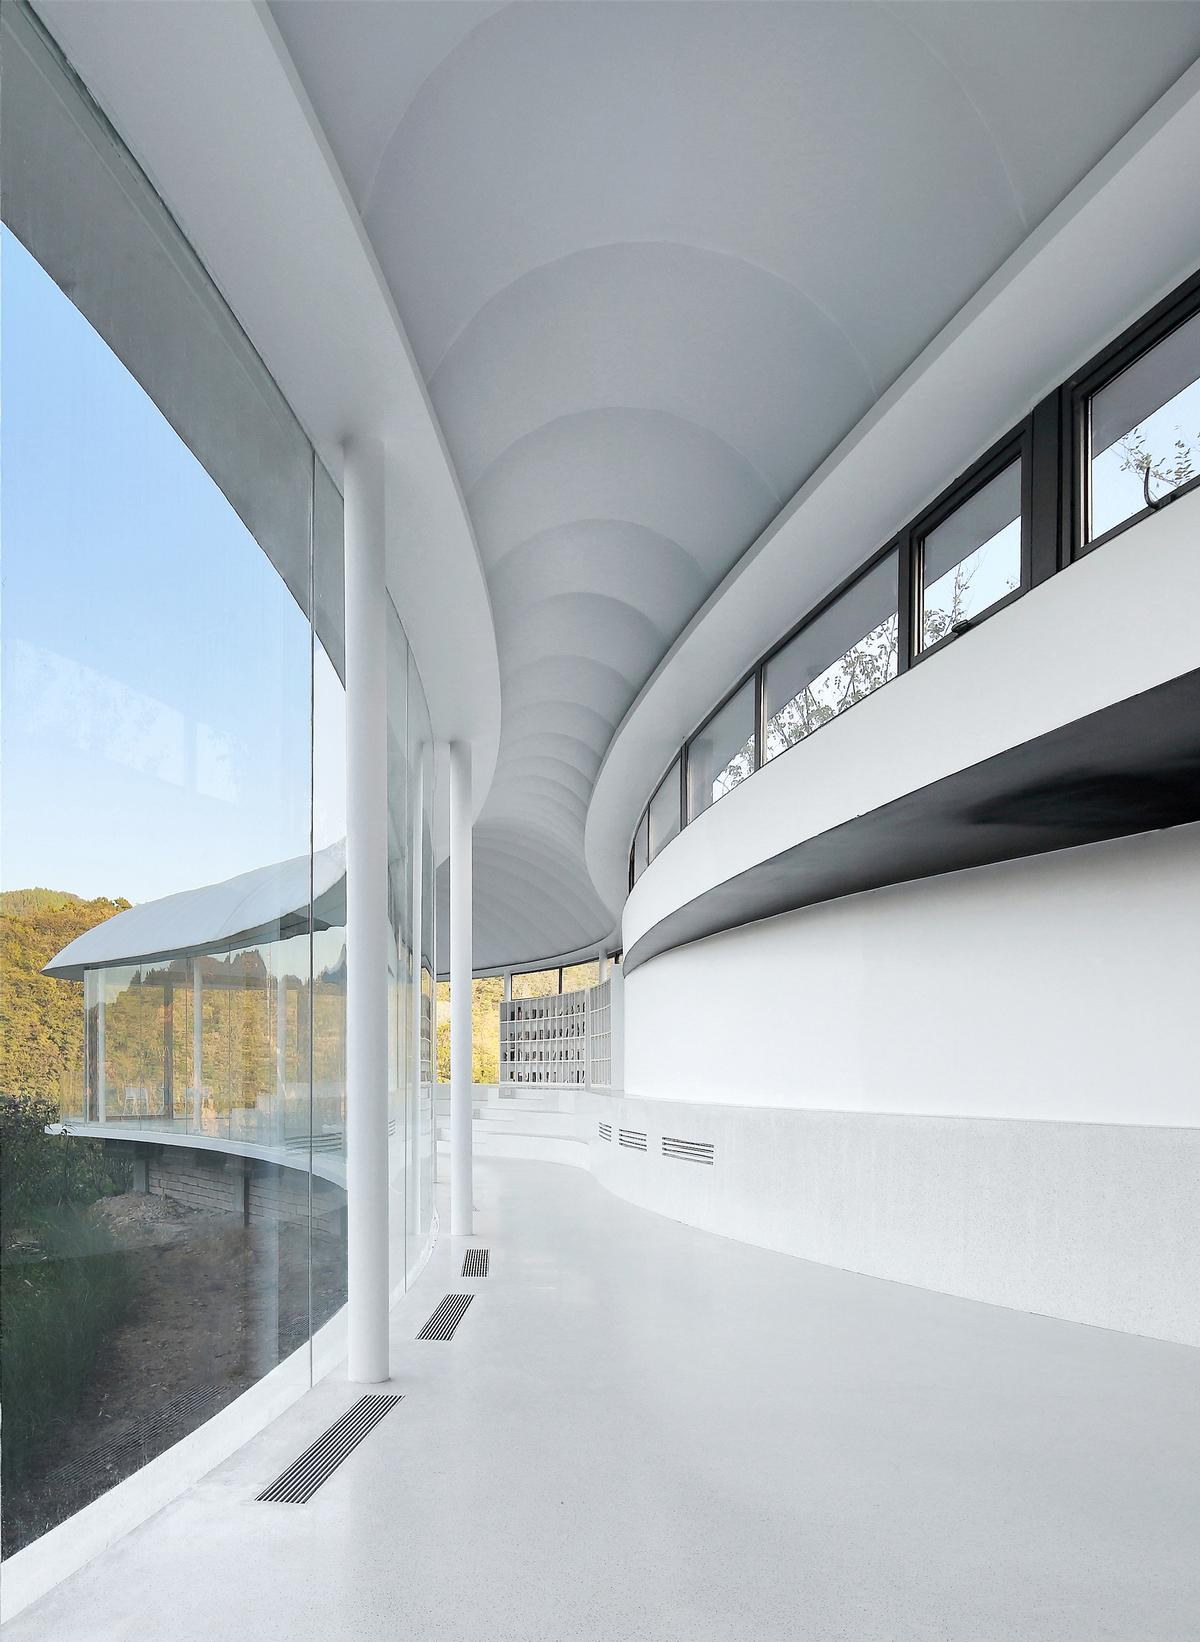 The building curves with the shape of the mountain to create two bulbous ends joined by a thinner midriff / Jin Xiaowen